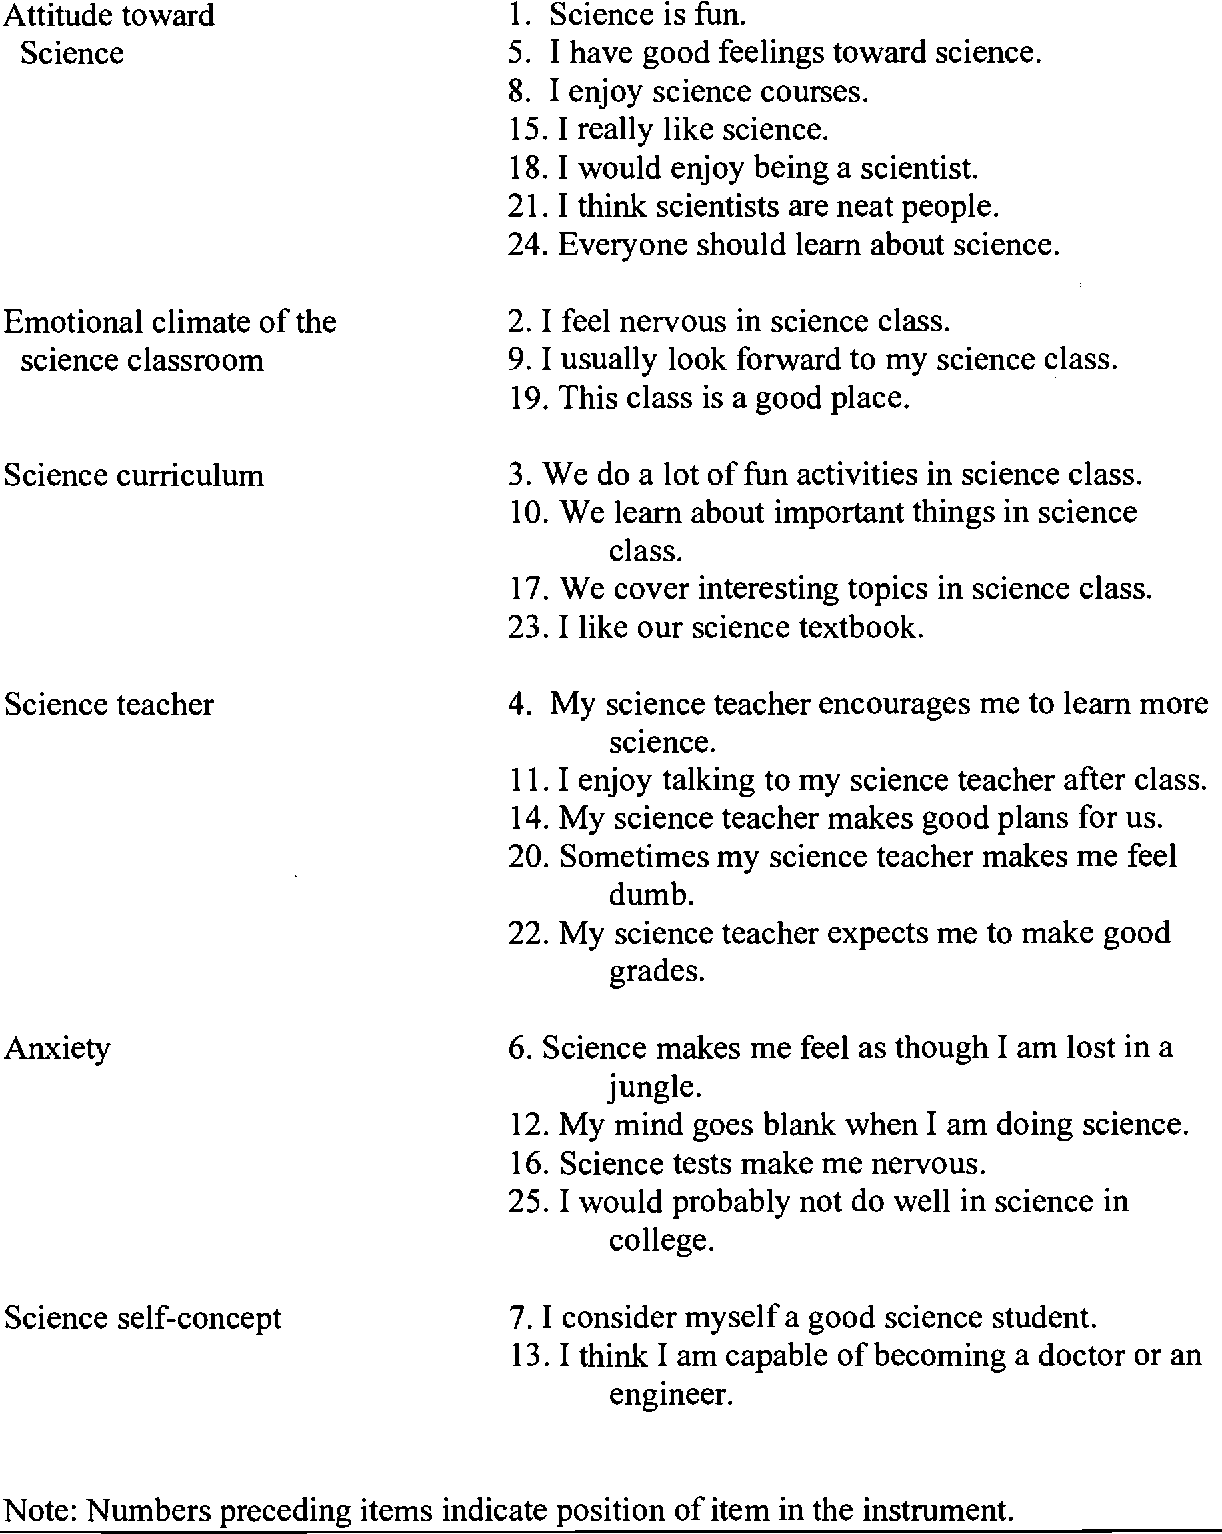 PDF] The Relationship between Attitude toward Science with